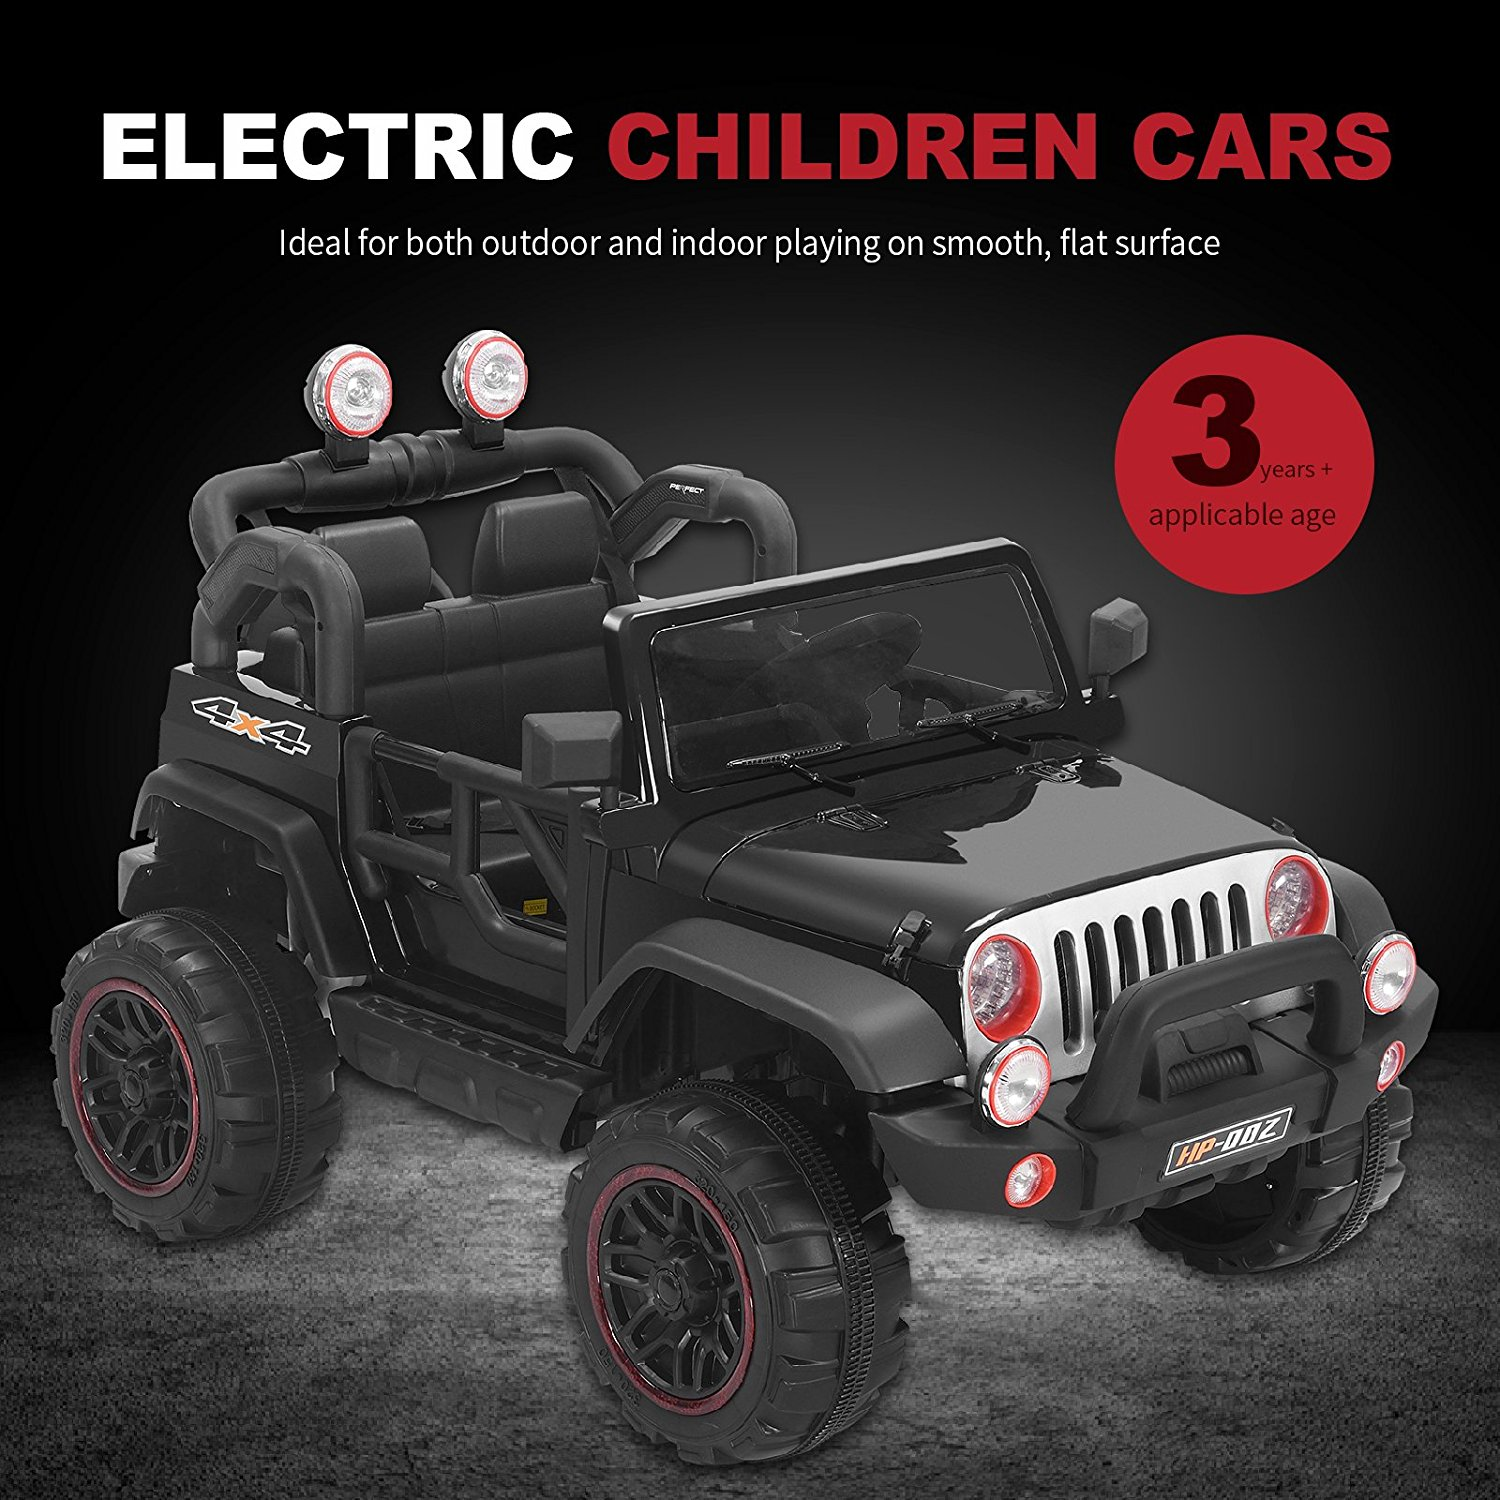 12V Kids Ride on Cars Electric Battery Power Wheels Remote Control 2 Speed by Uenjoy